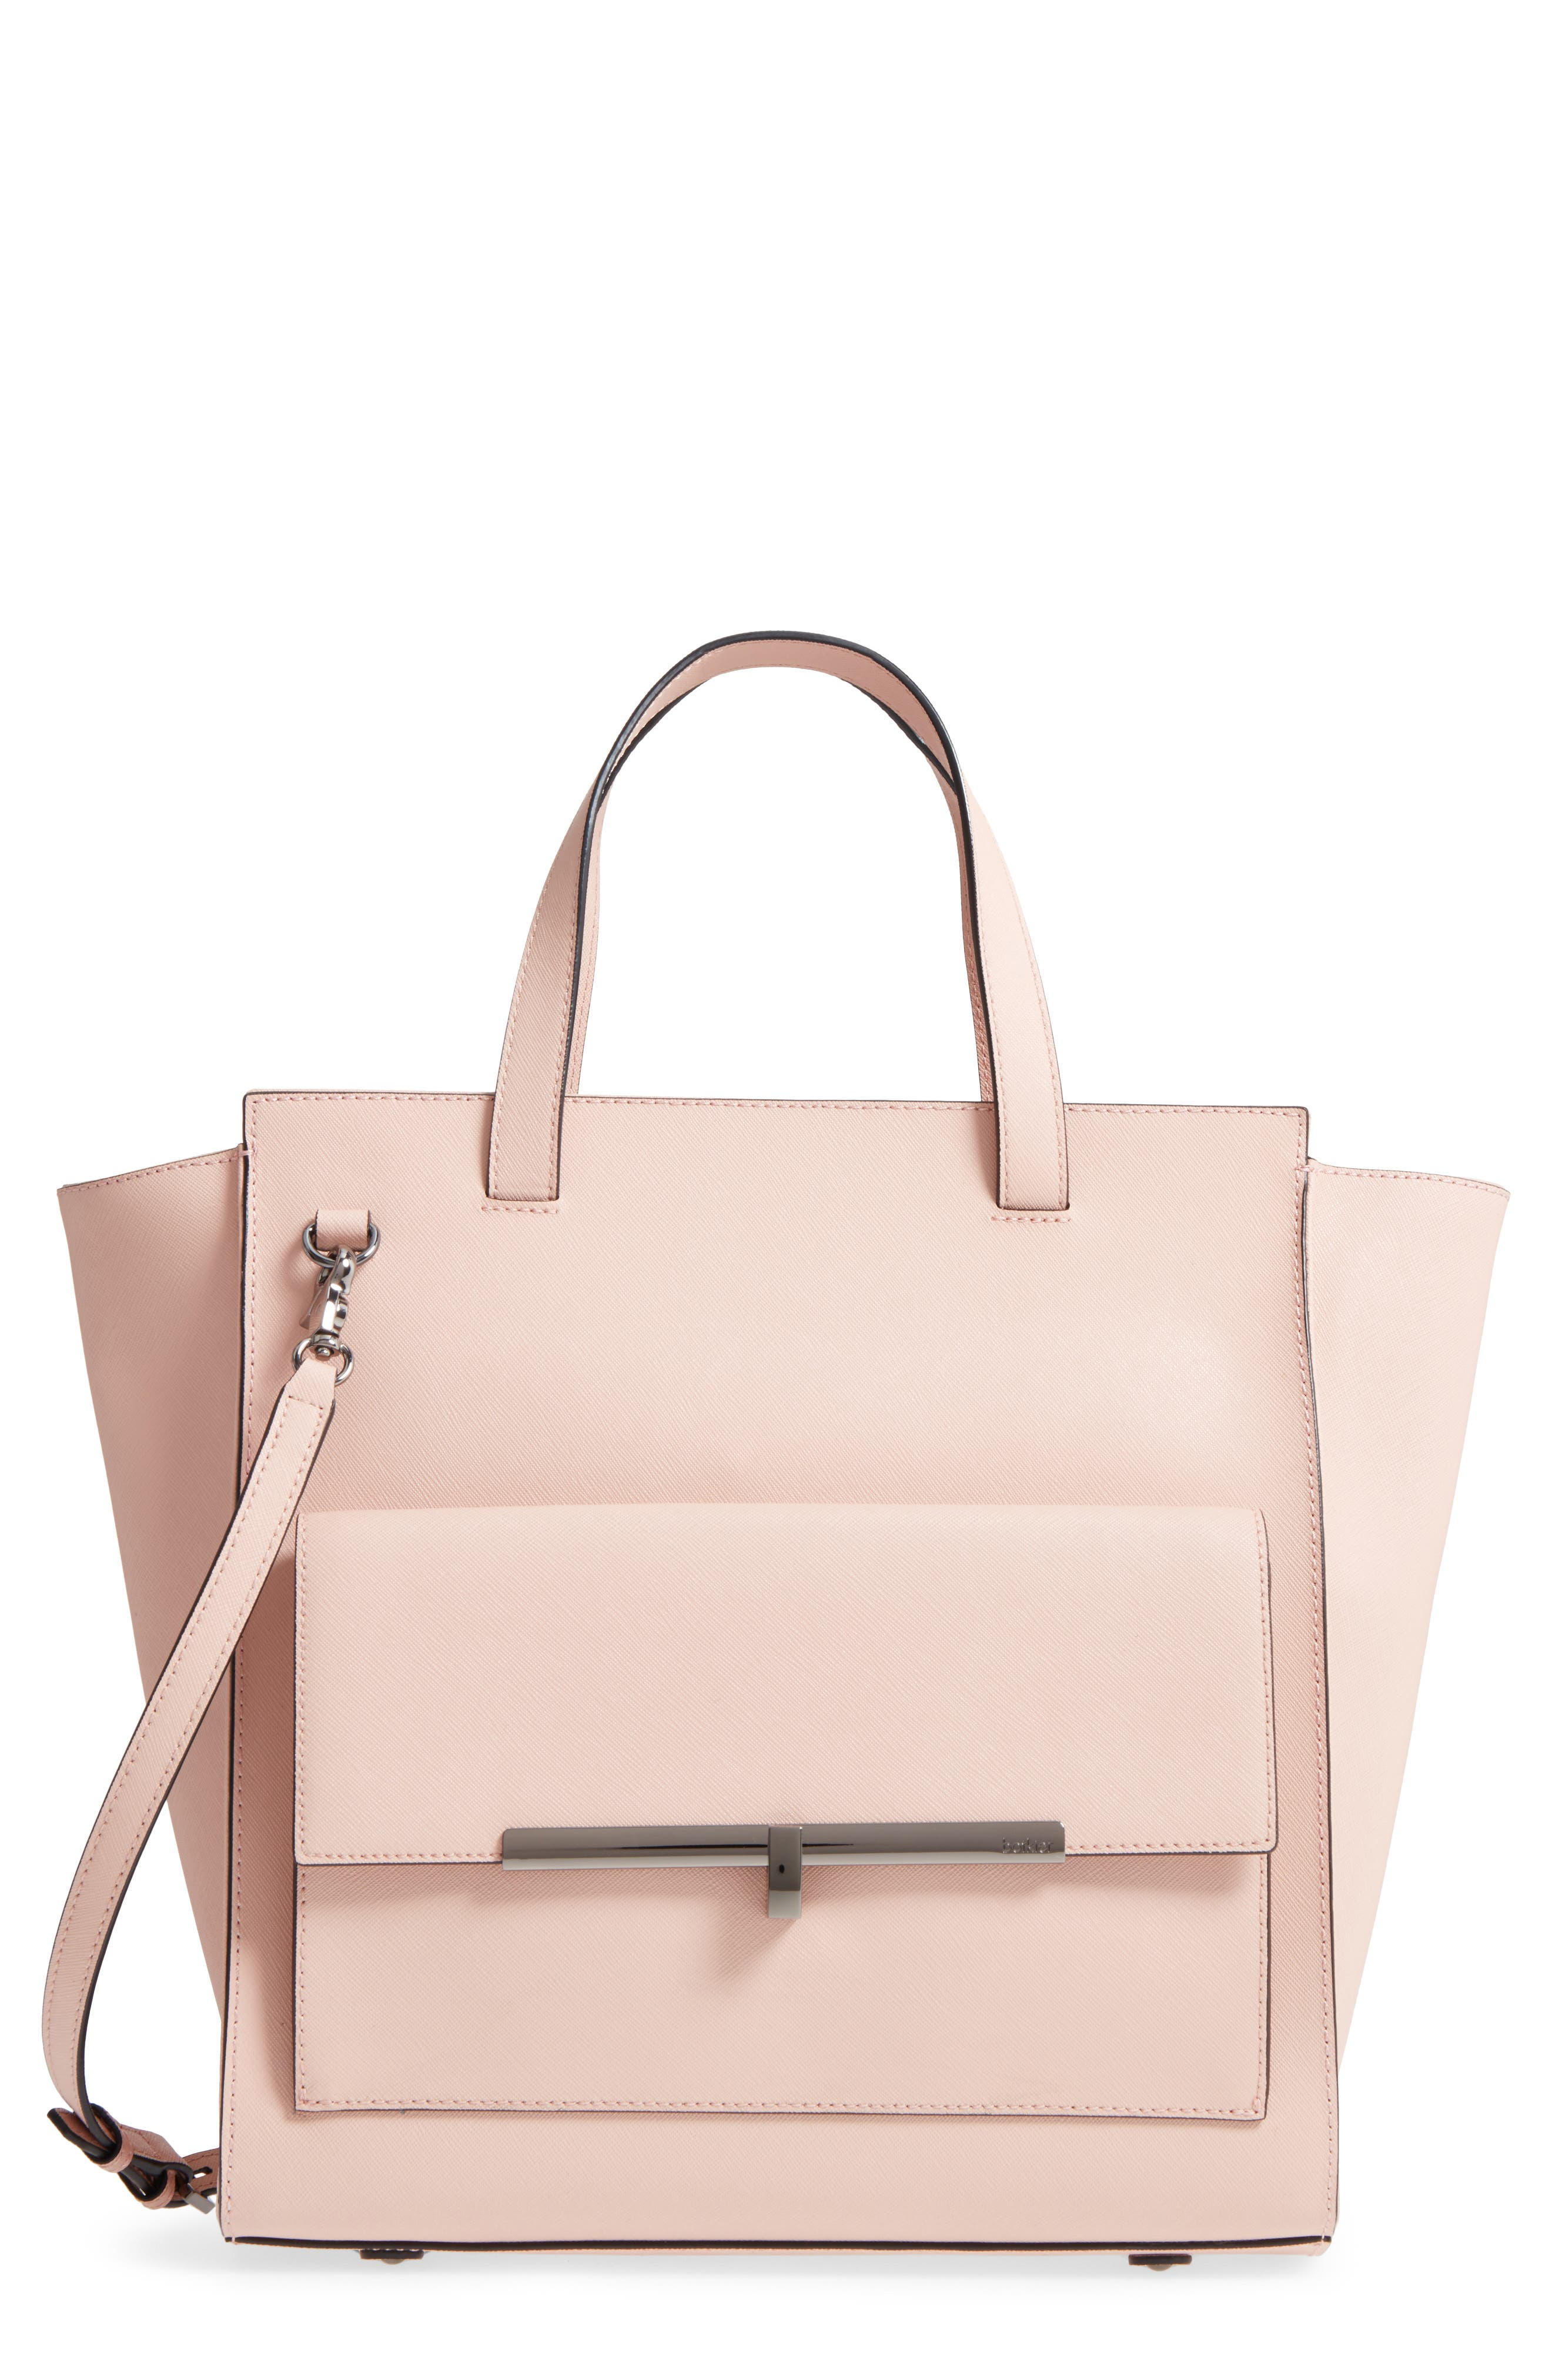 Jagger Leather Tote,                         Main,                         color, Blush